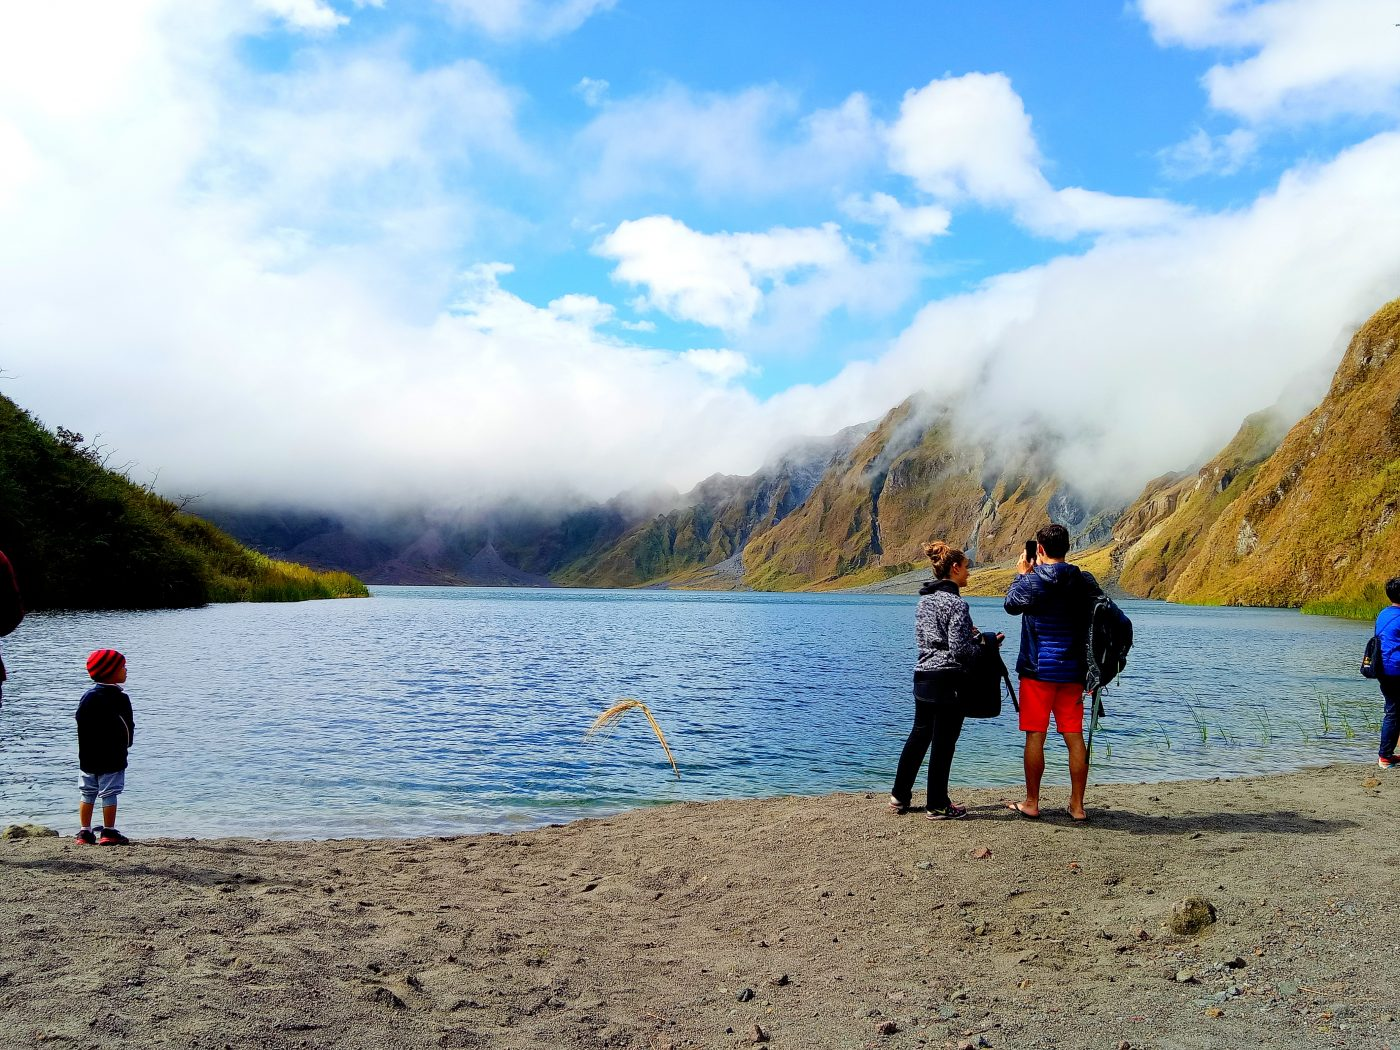 MT. PINATUBO : A Hike With A Story